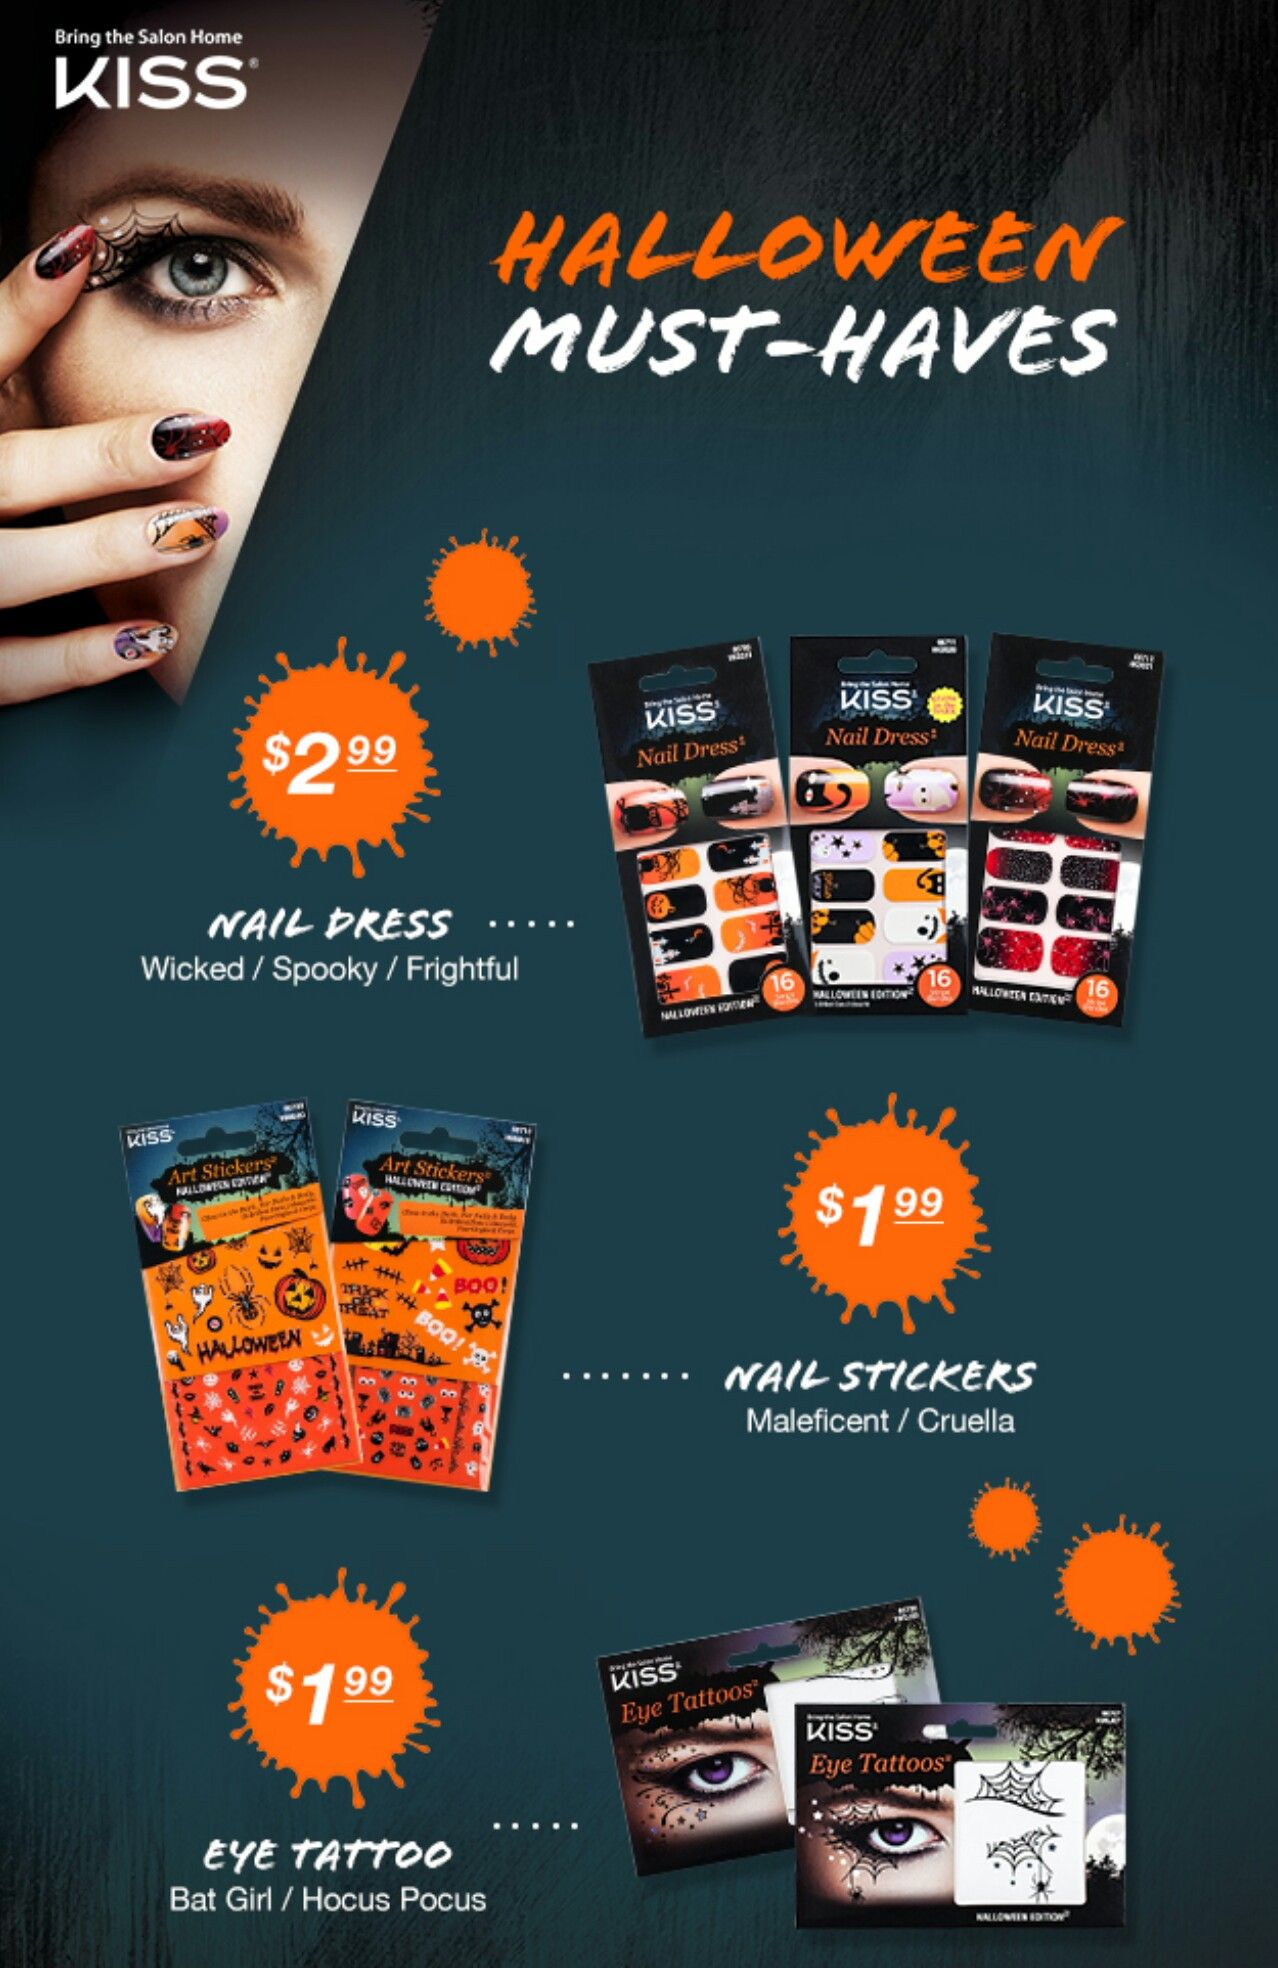 KISS Halloween Must-Haves @kissproducts | Halloween nails ...